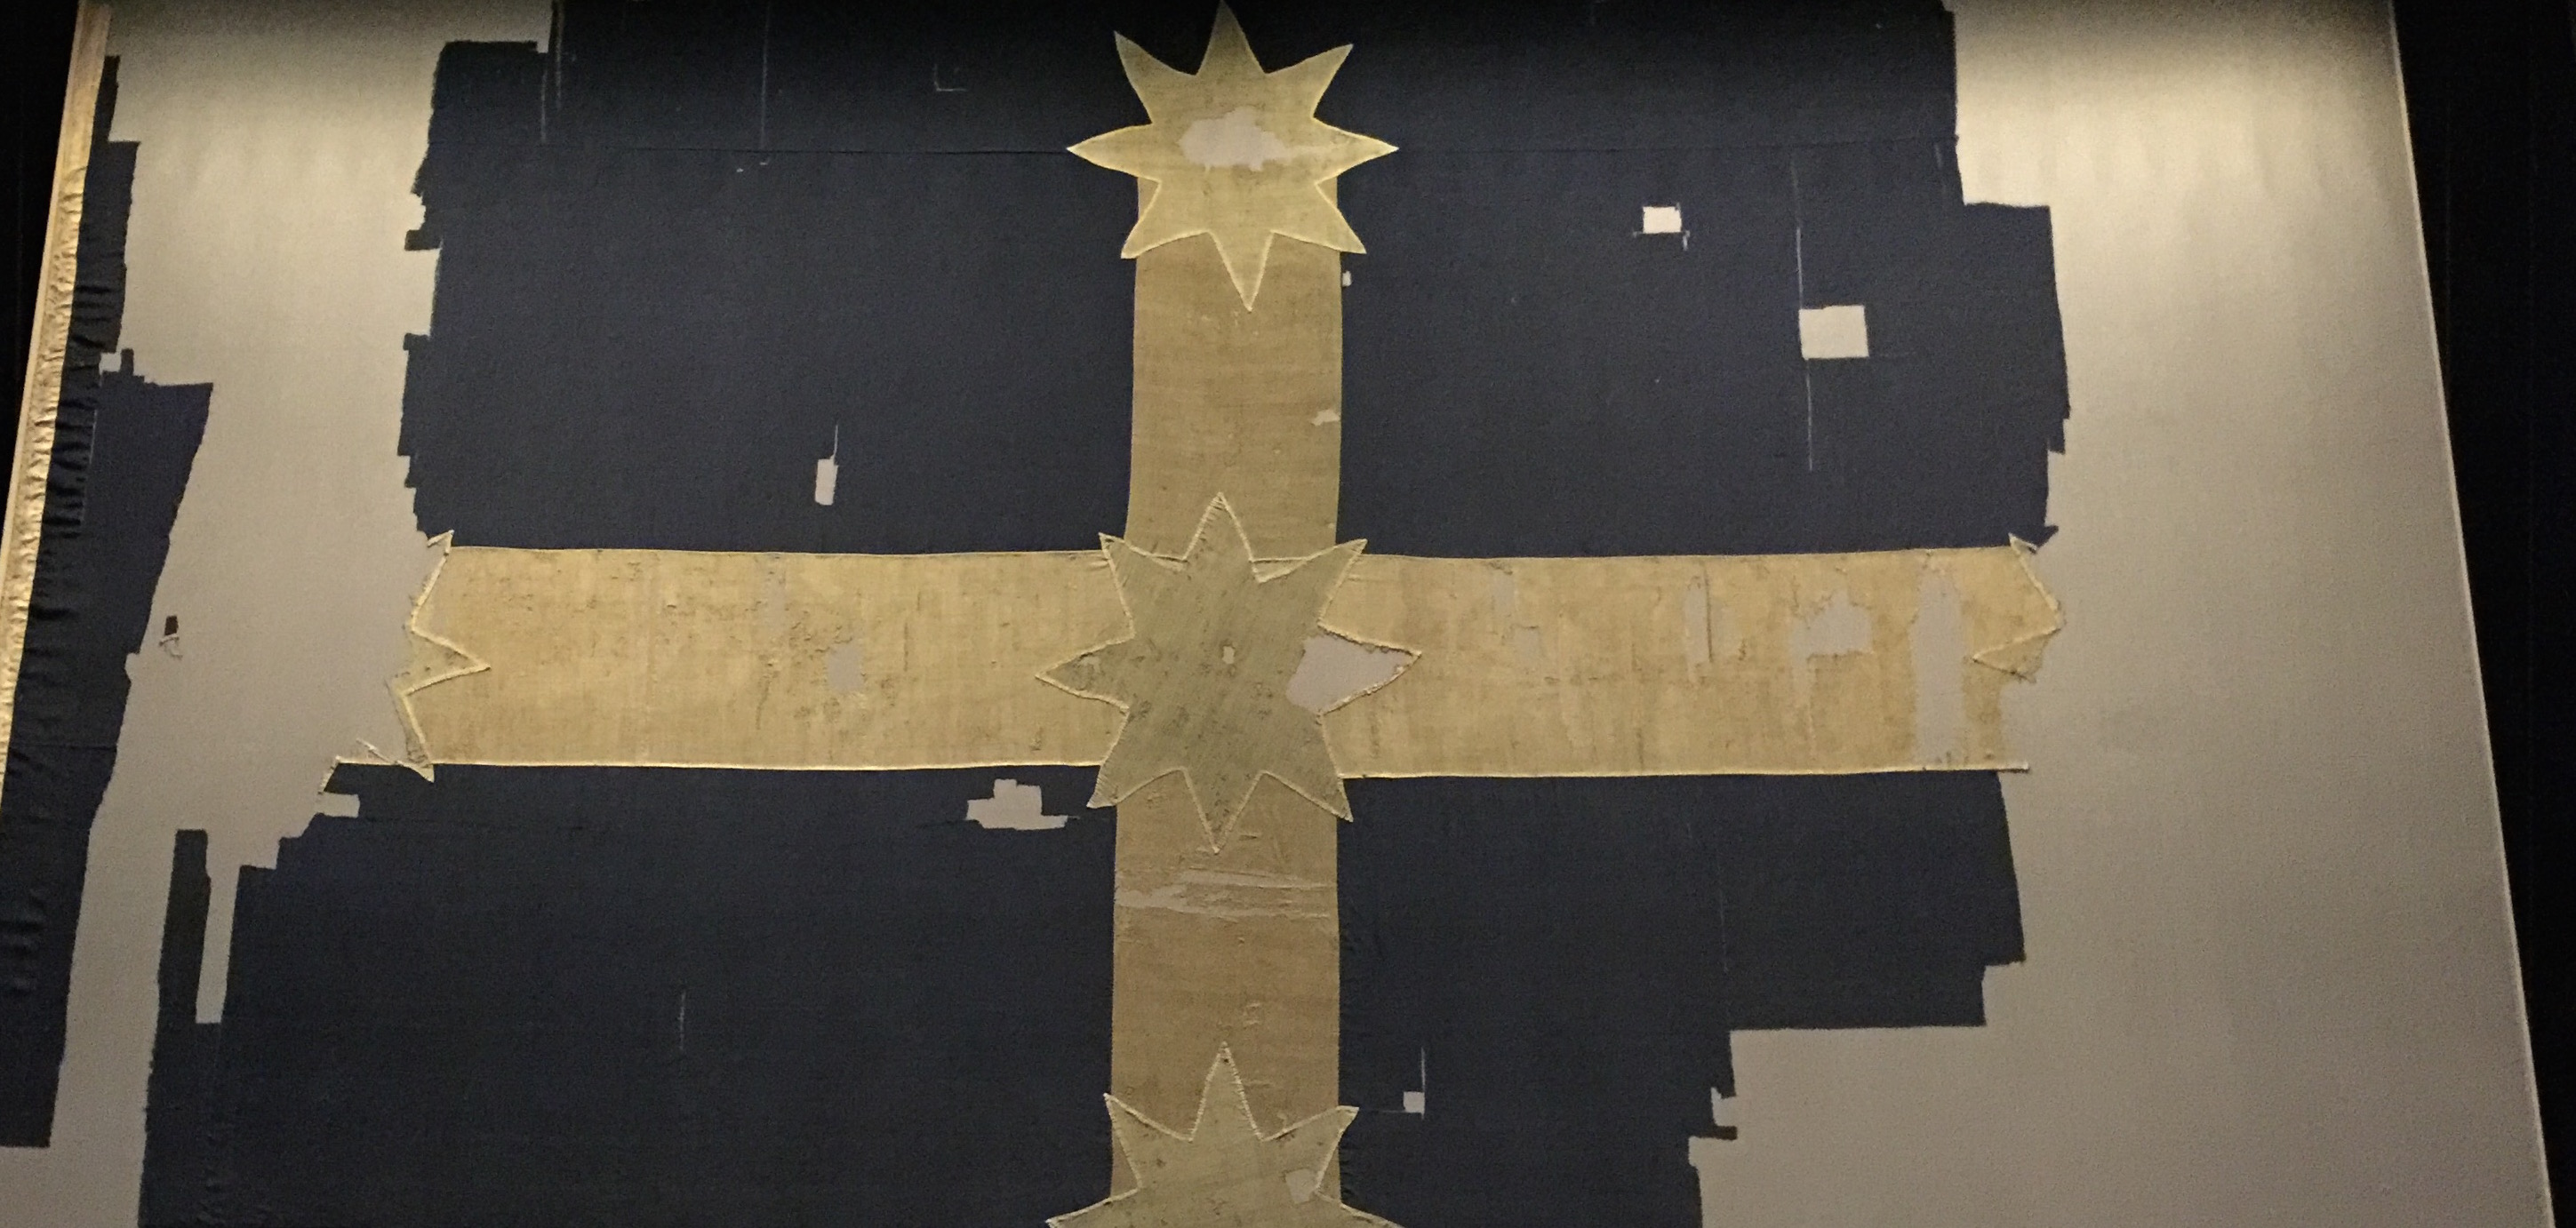 Original Eureka Flag on display in the MADE